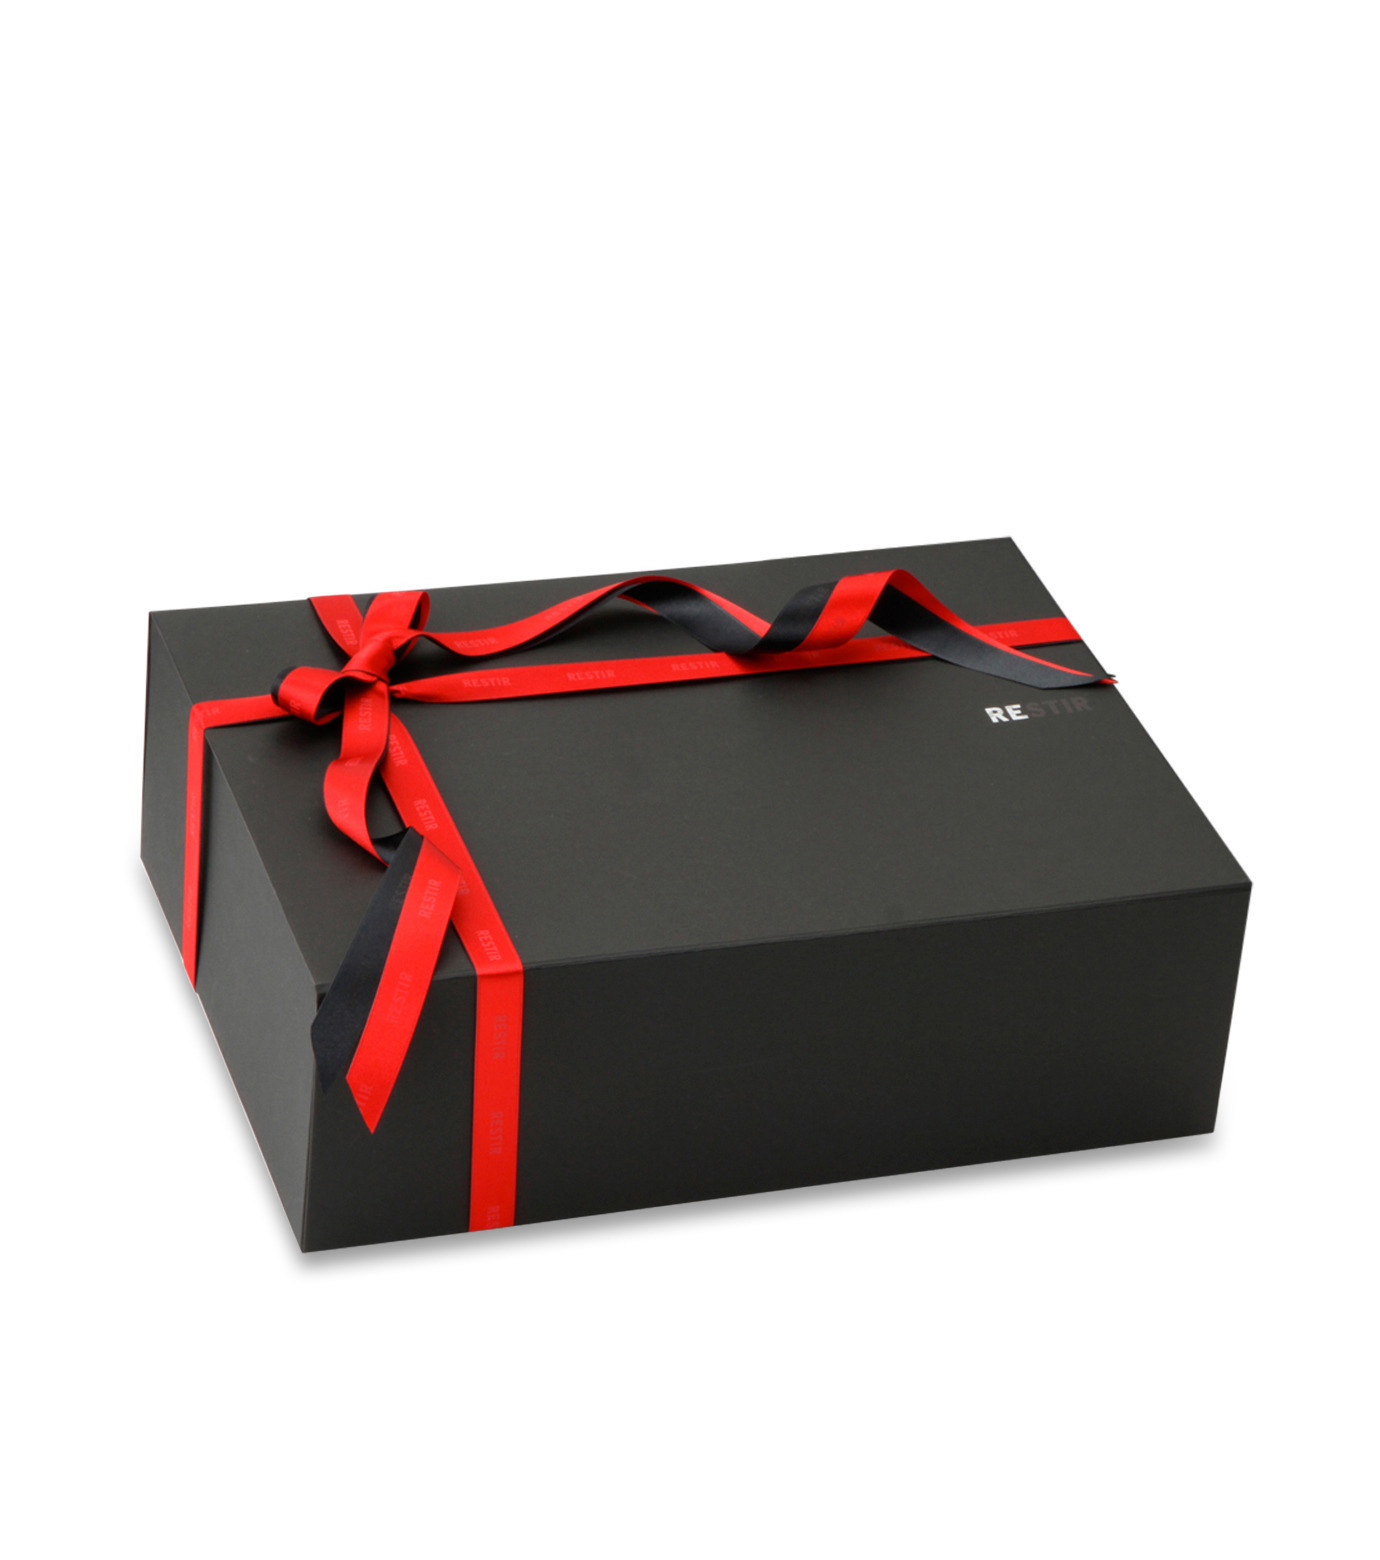 Gift Set(ギフトセット)のShoes Lovers-NONE-Giftset-shoe-0 拡大詳細画像4